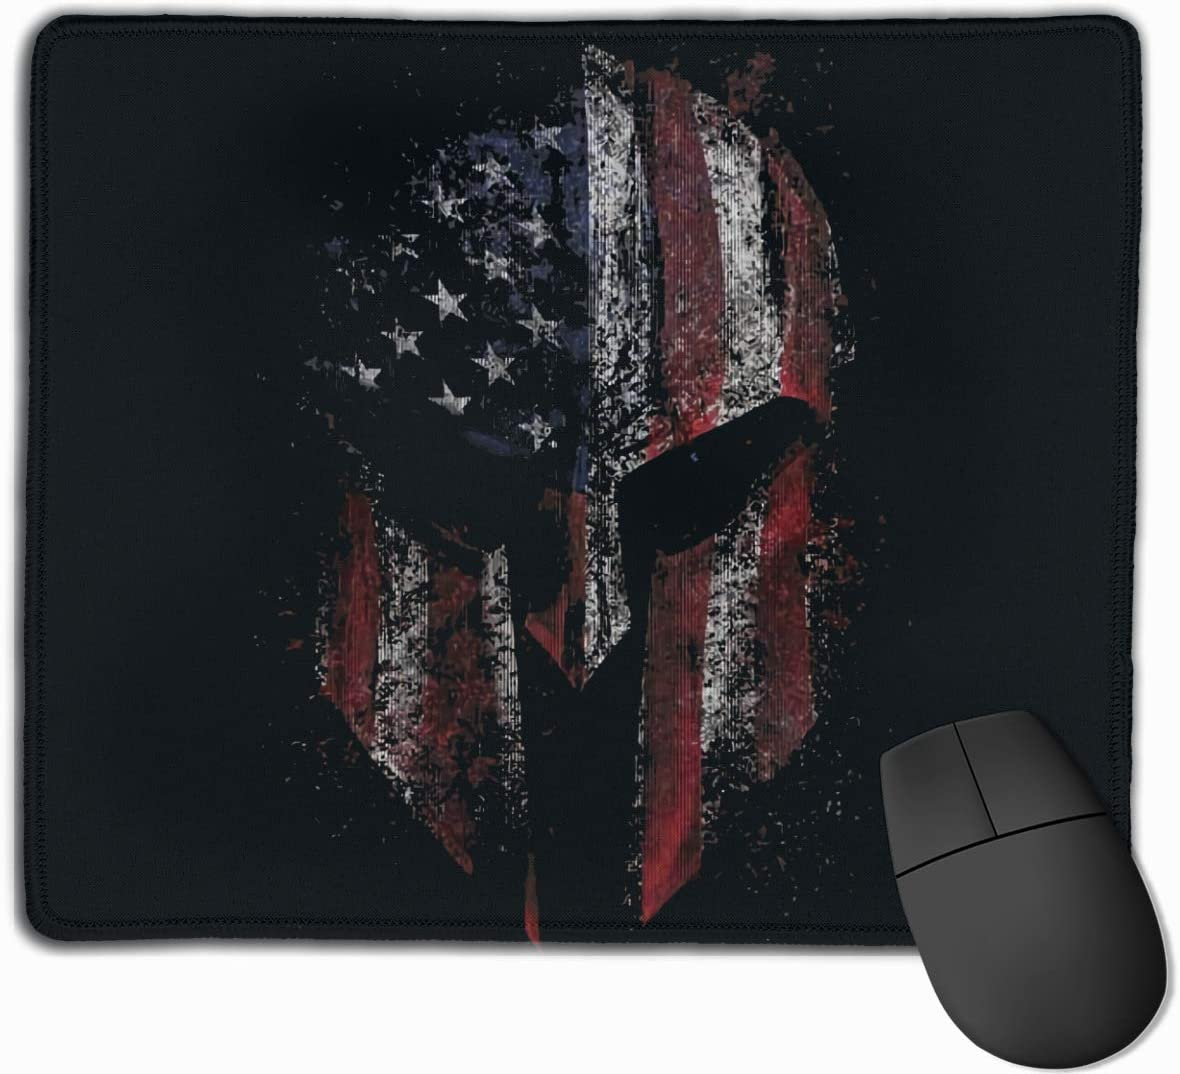 Spartan Office Mouse Pad Gaming Mouse Pad Nonslip Rubber Backing